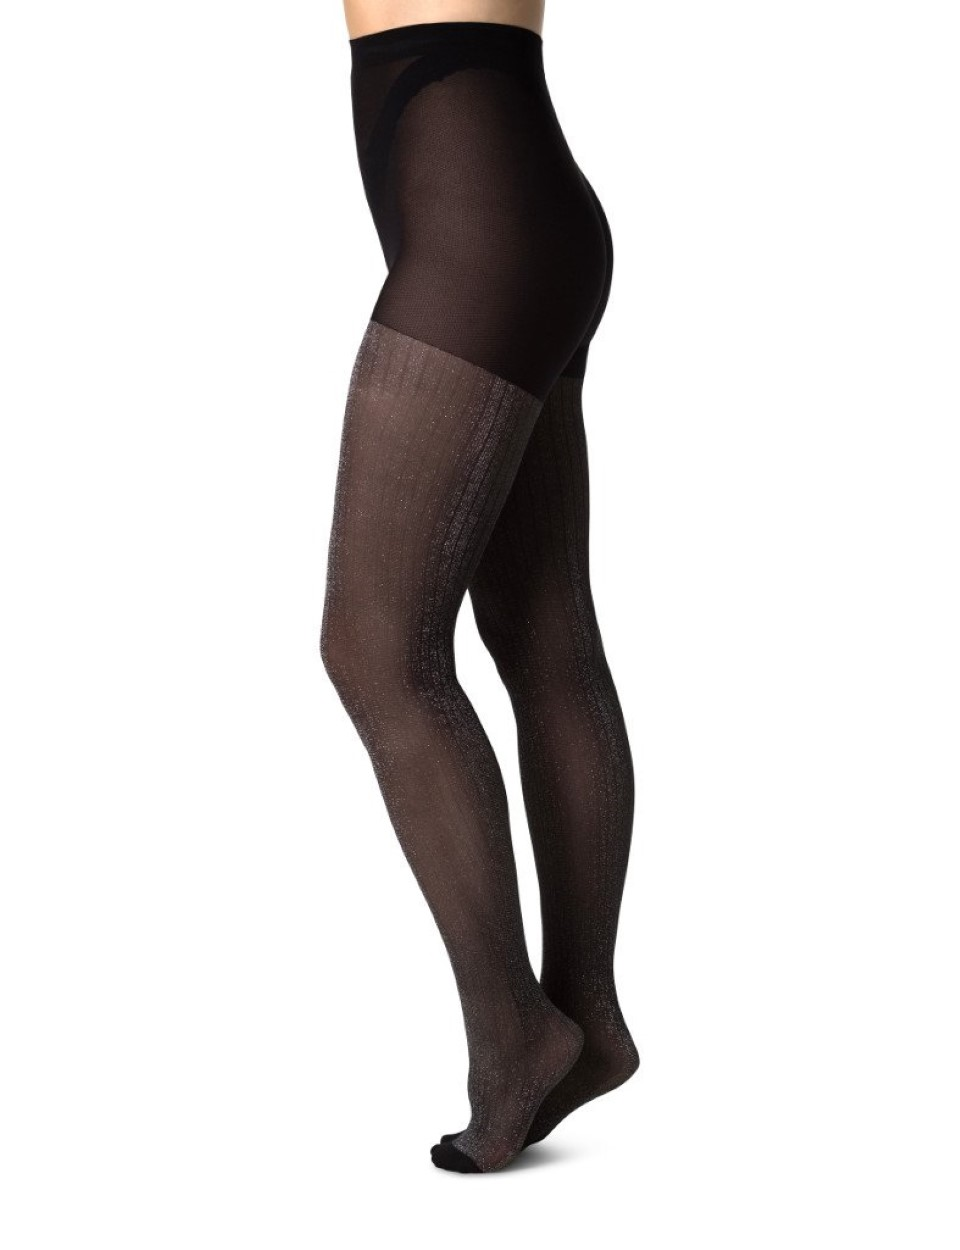 Swedish Stockings zwarte panty Lisa lurex rib motief